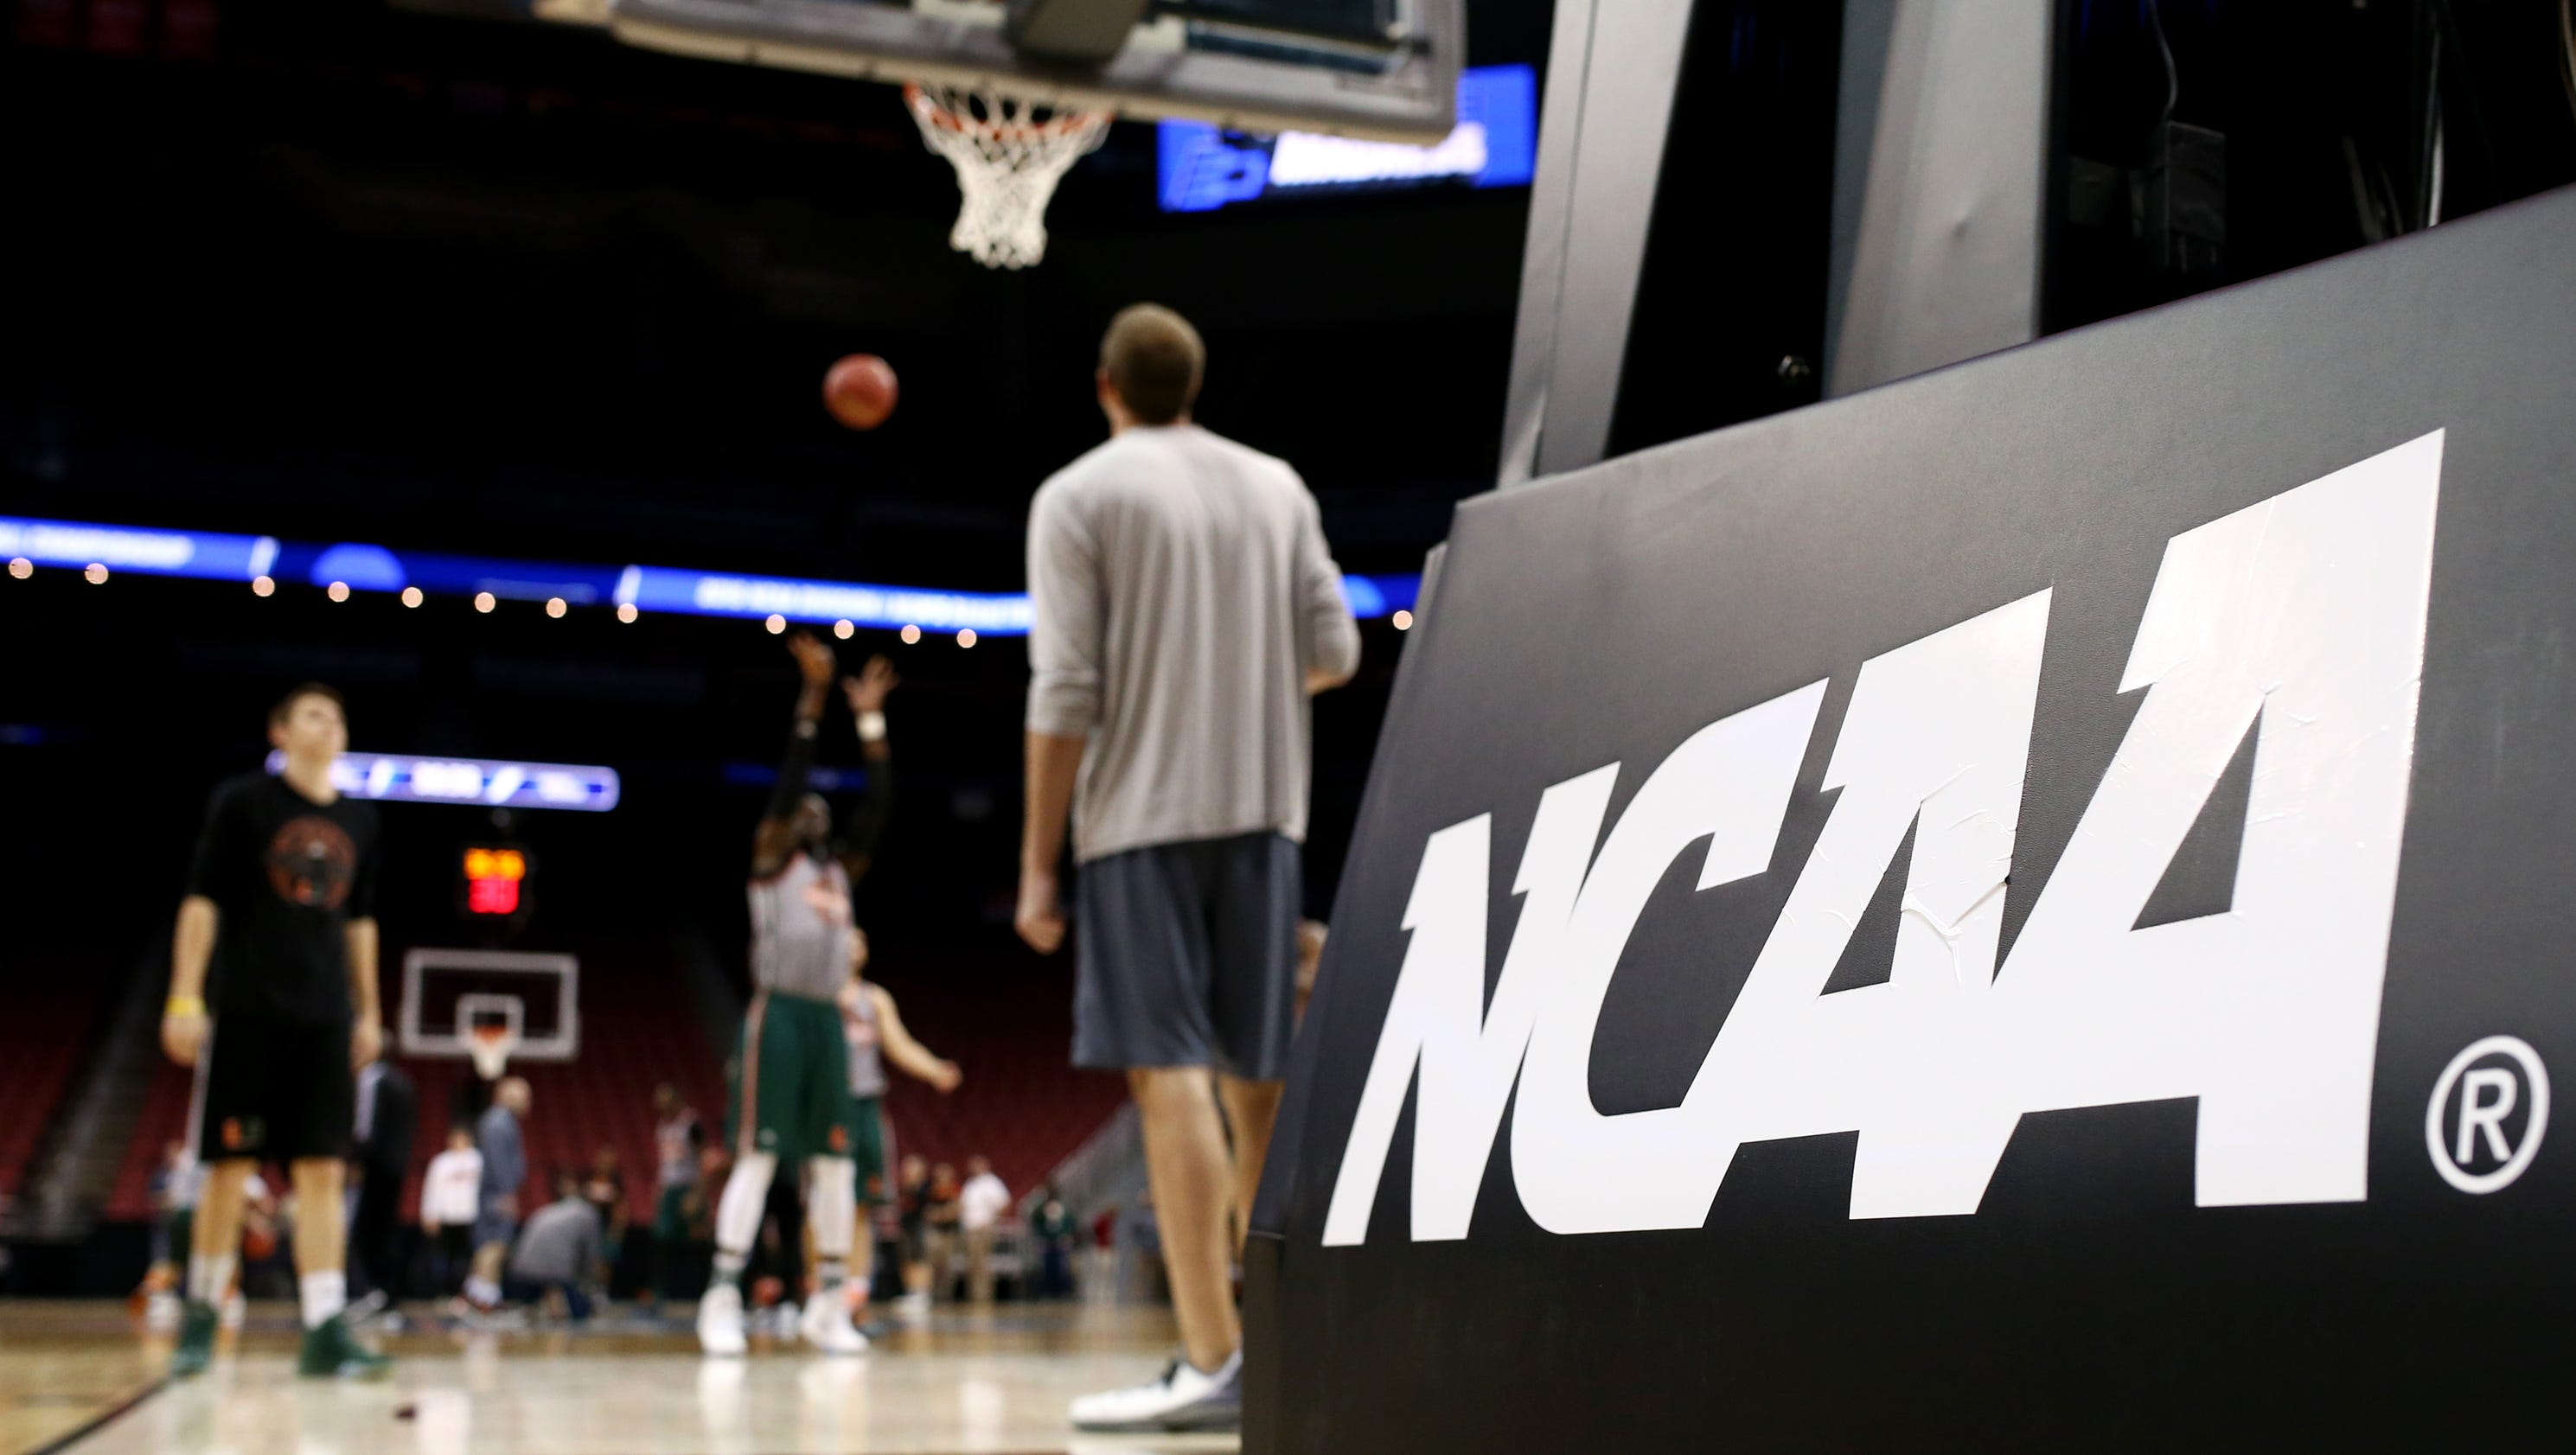 NCAA athletes, coaches agree on some time demand issues, far apart on others